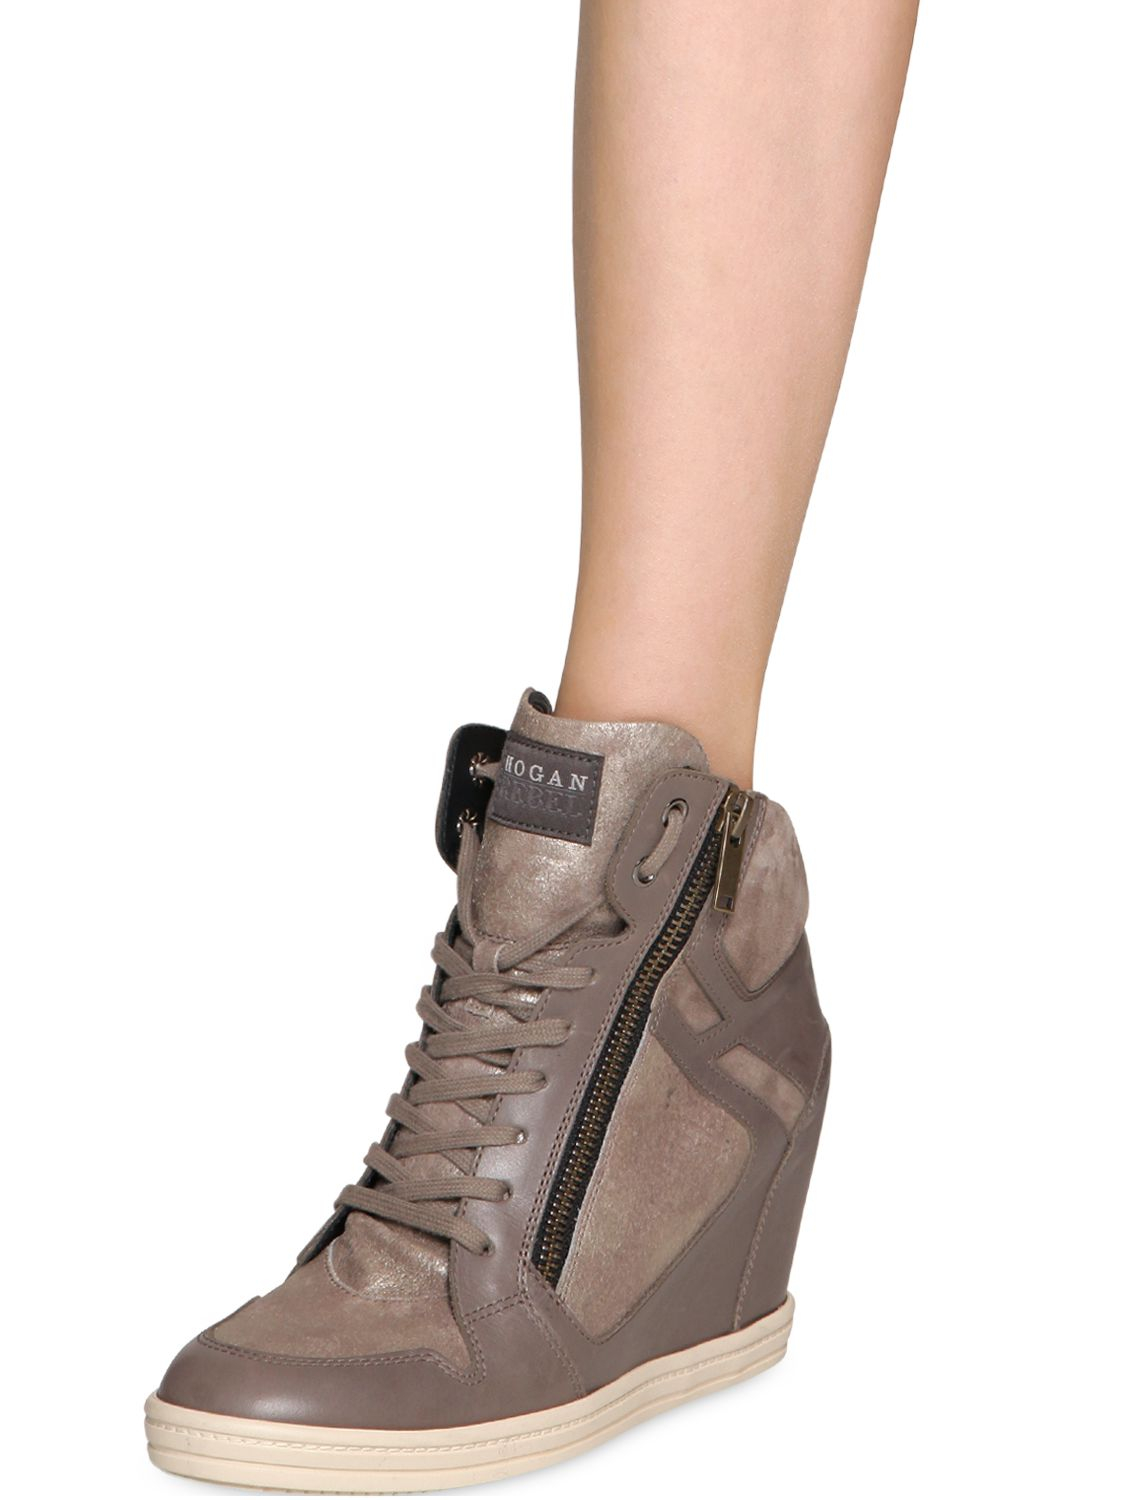 1f3fd78dac2a Lyst - Hogan Rebel 90mm Metallic Leather Wedge Sneakers in Gray